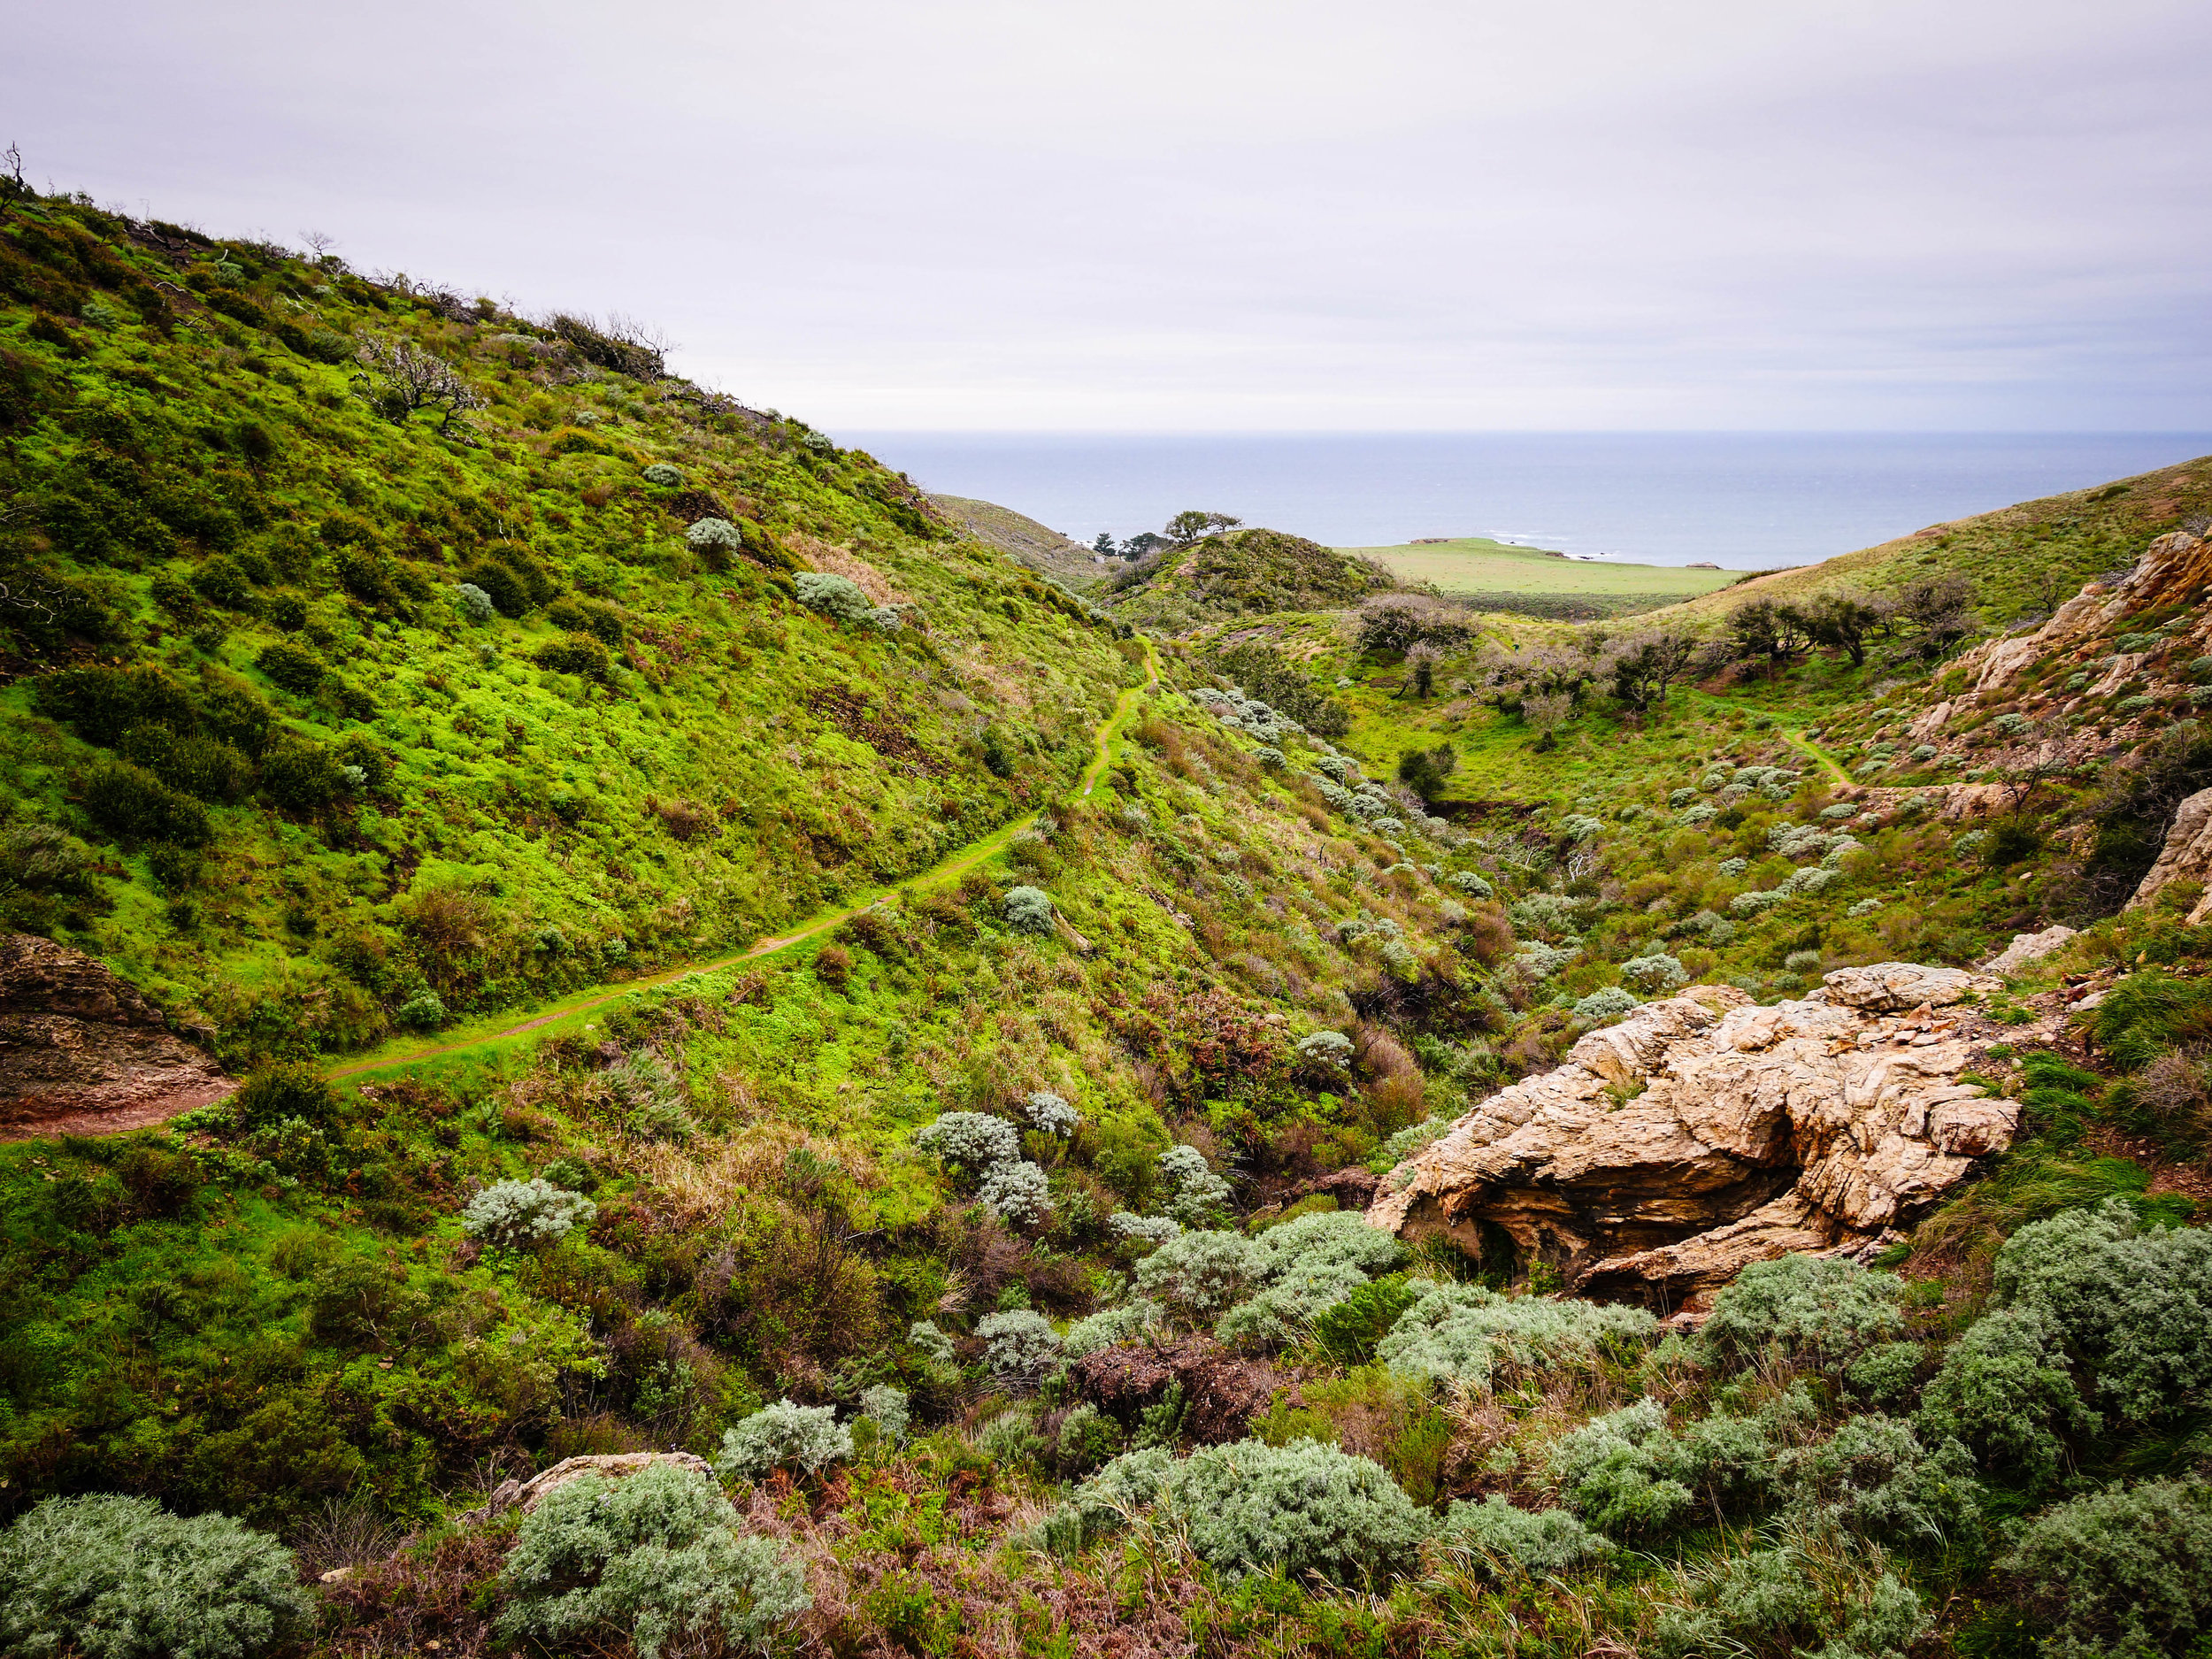 Recent rains turn the hills a lush green at Montana de Oro State Park.